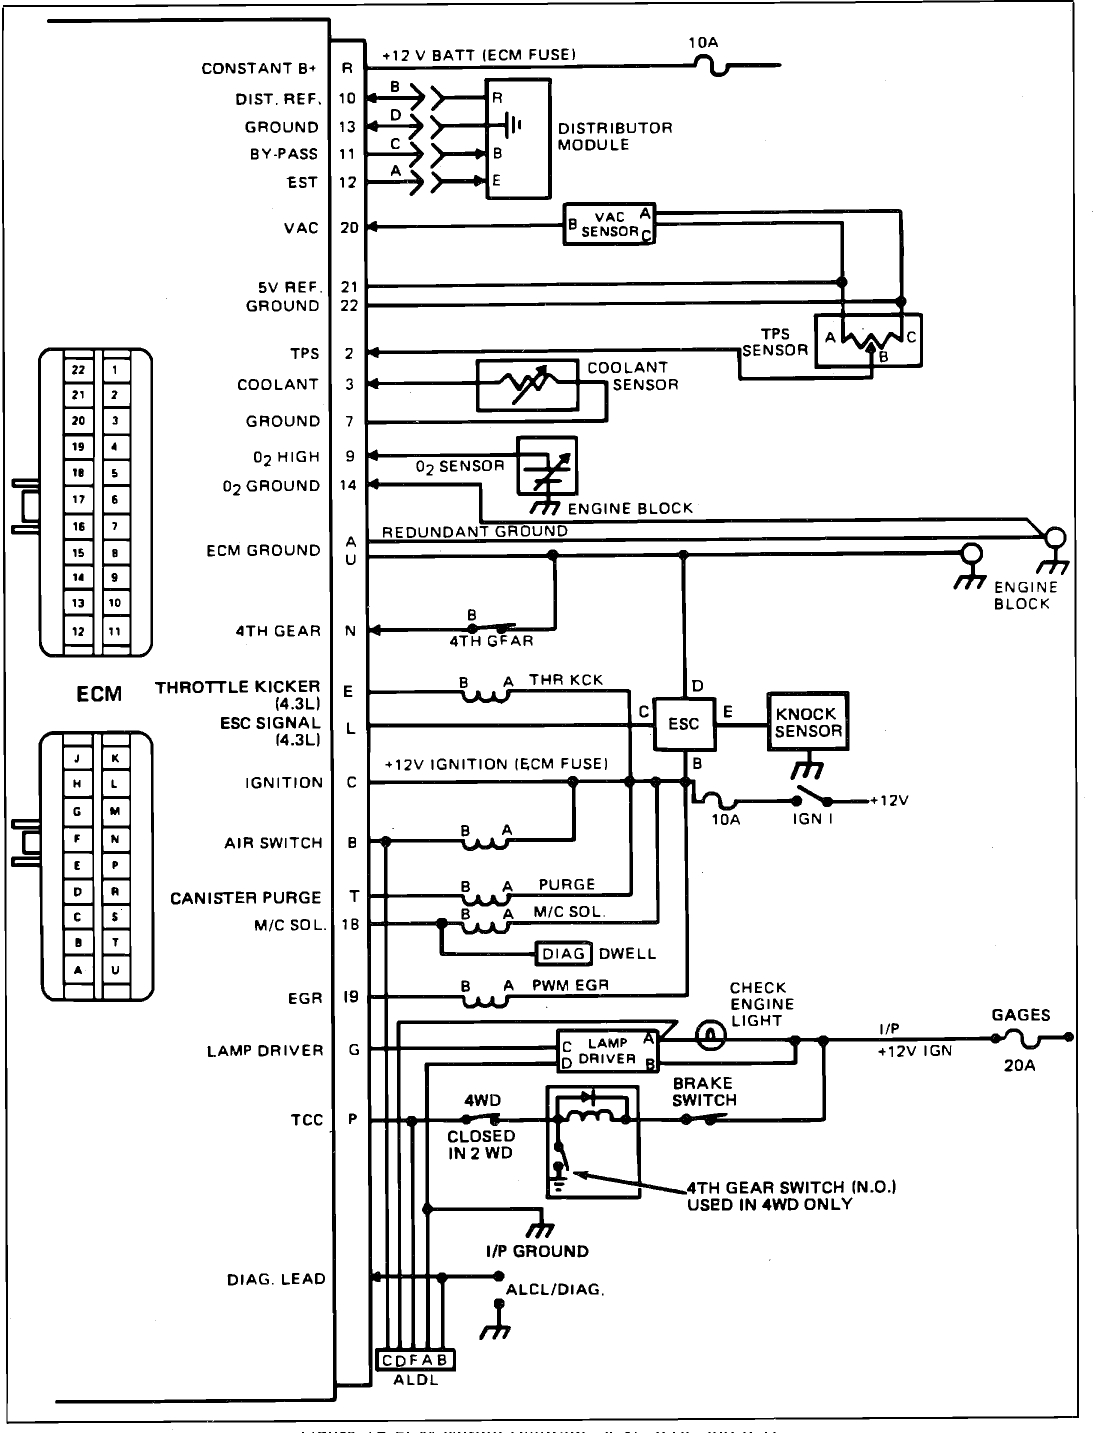 fuse block circuit diagram detailed schematics diagram rh lelandlutheran  com 2005 Chevy Silverado Fuse Box Diagram 2001 Silverado Fuse Panel